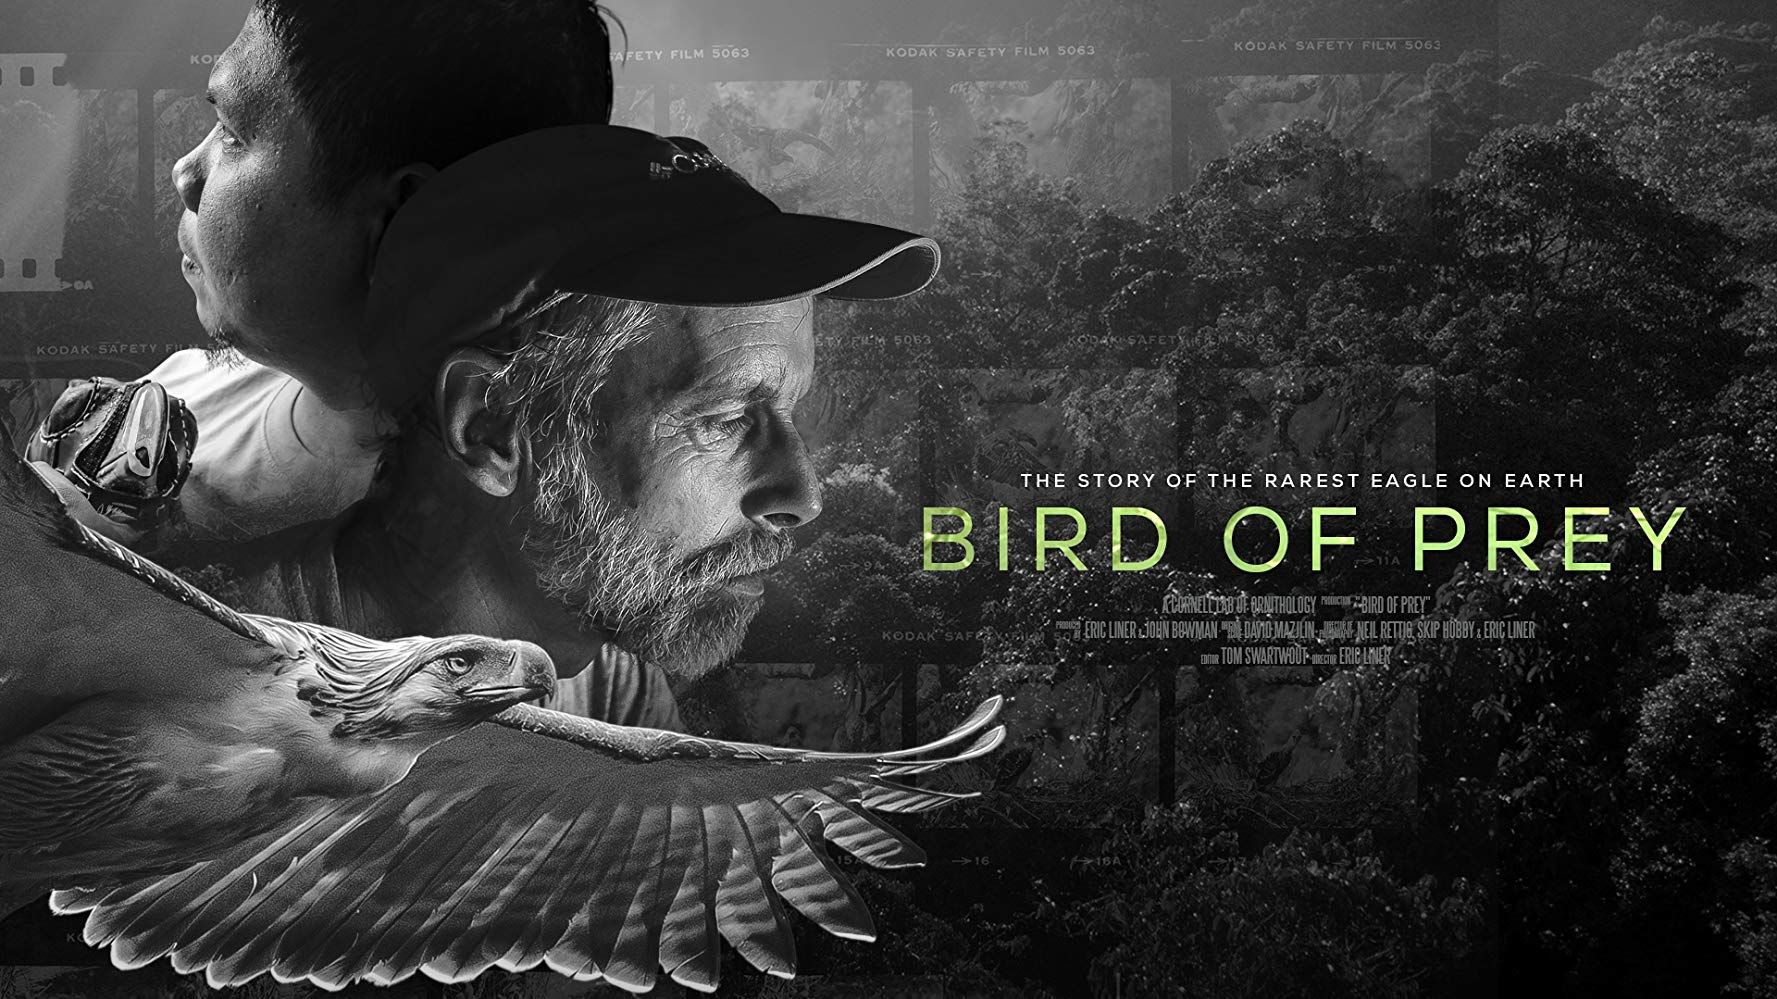 Red Barn Event: Bird of Prey film showing